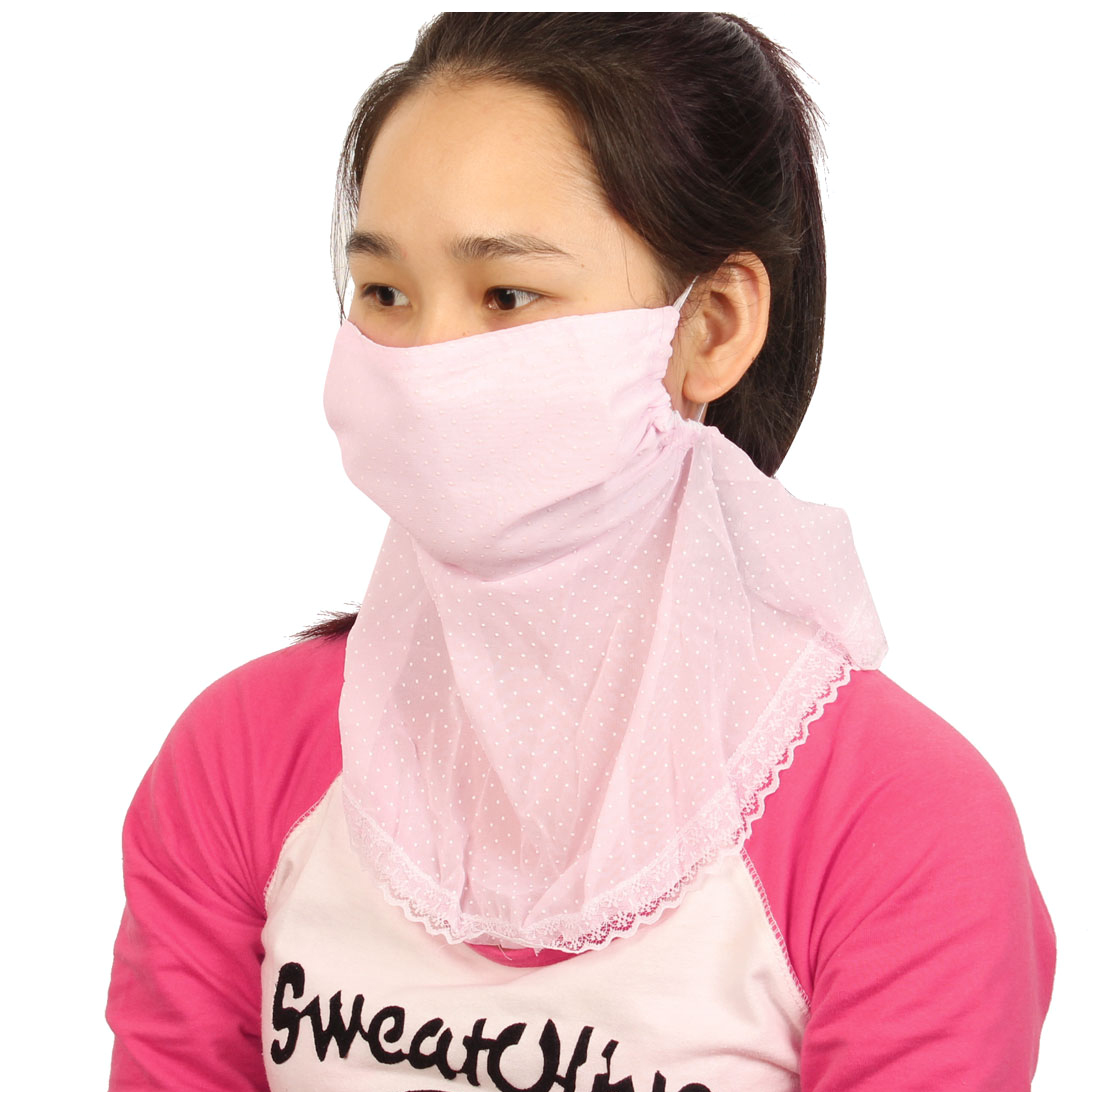 Summer Sun Protect Anti UV Dust Lace Decor Neck Protection Mask Light Pink For Women